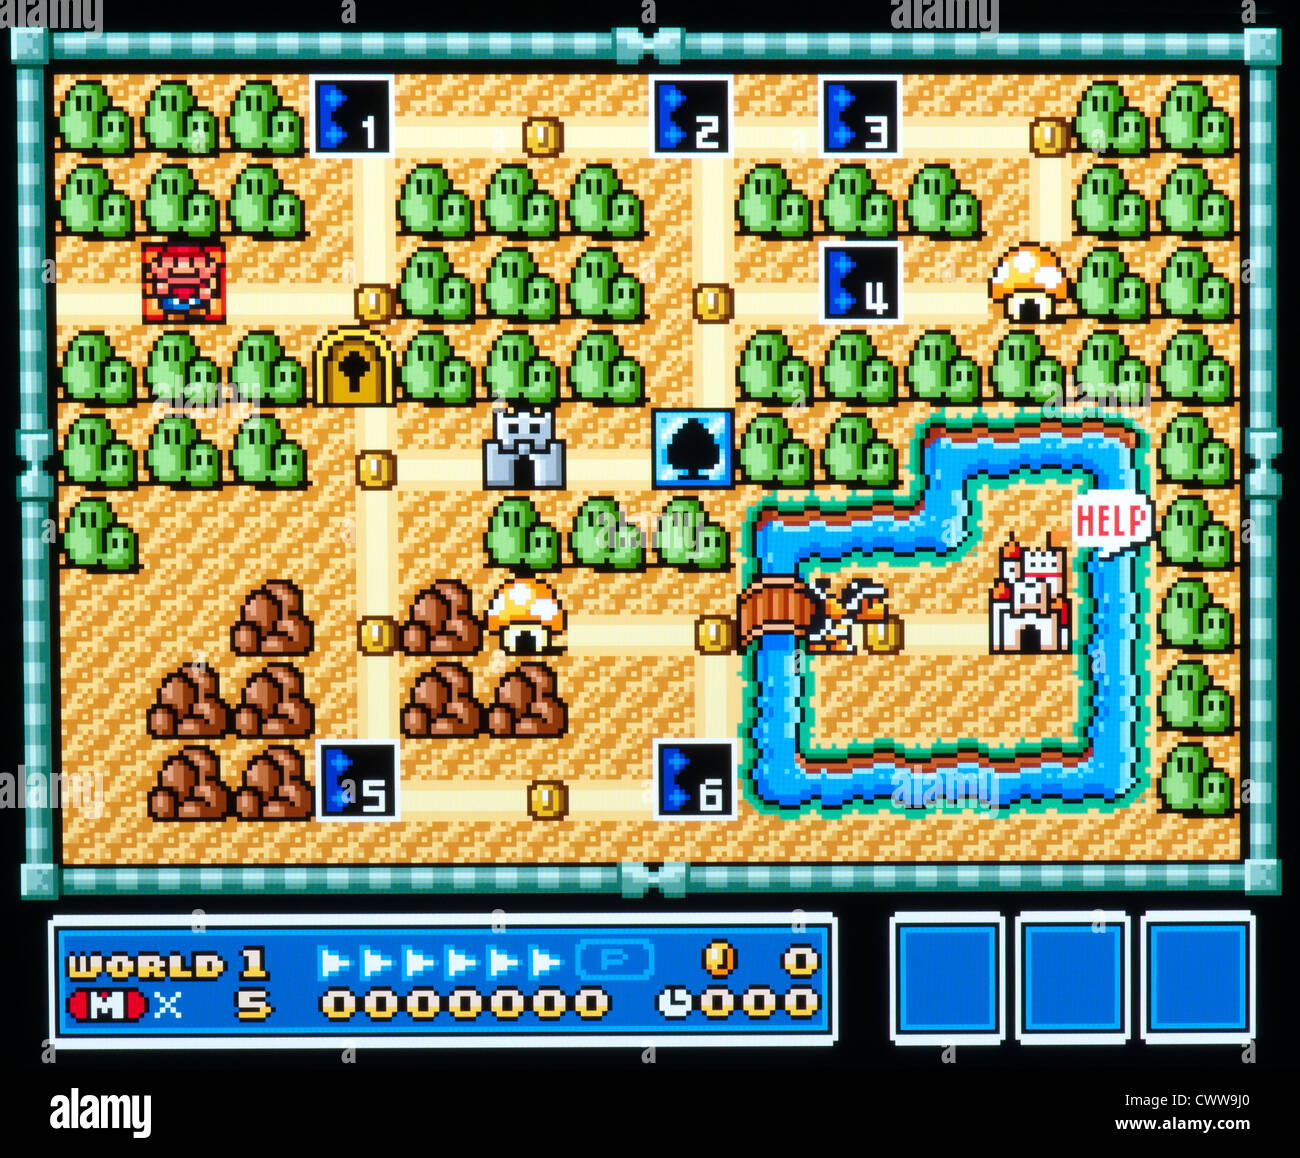 Super mario bros video game world 1 level map interface stock super mario bros video game world 1 level map interface gumiabroncs Gallery